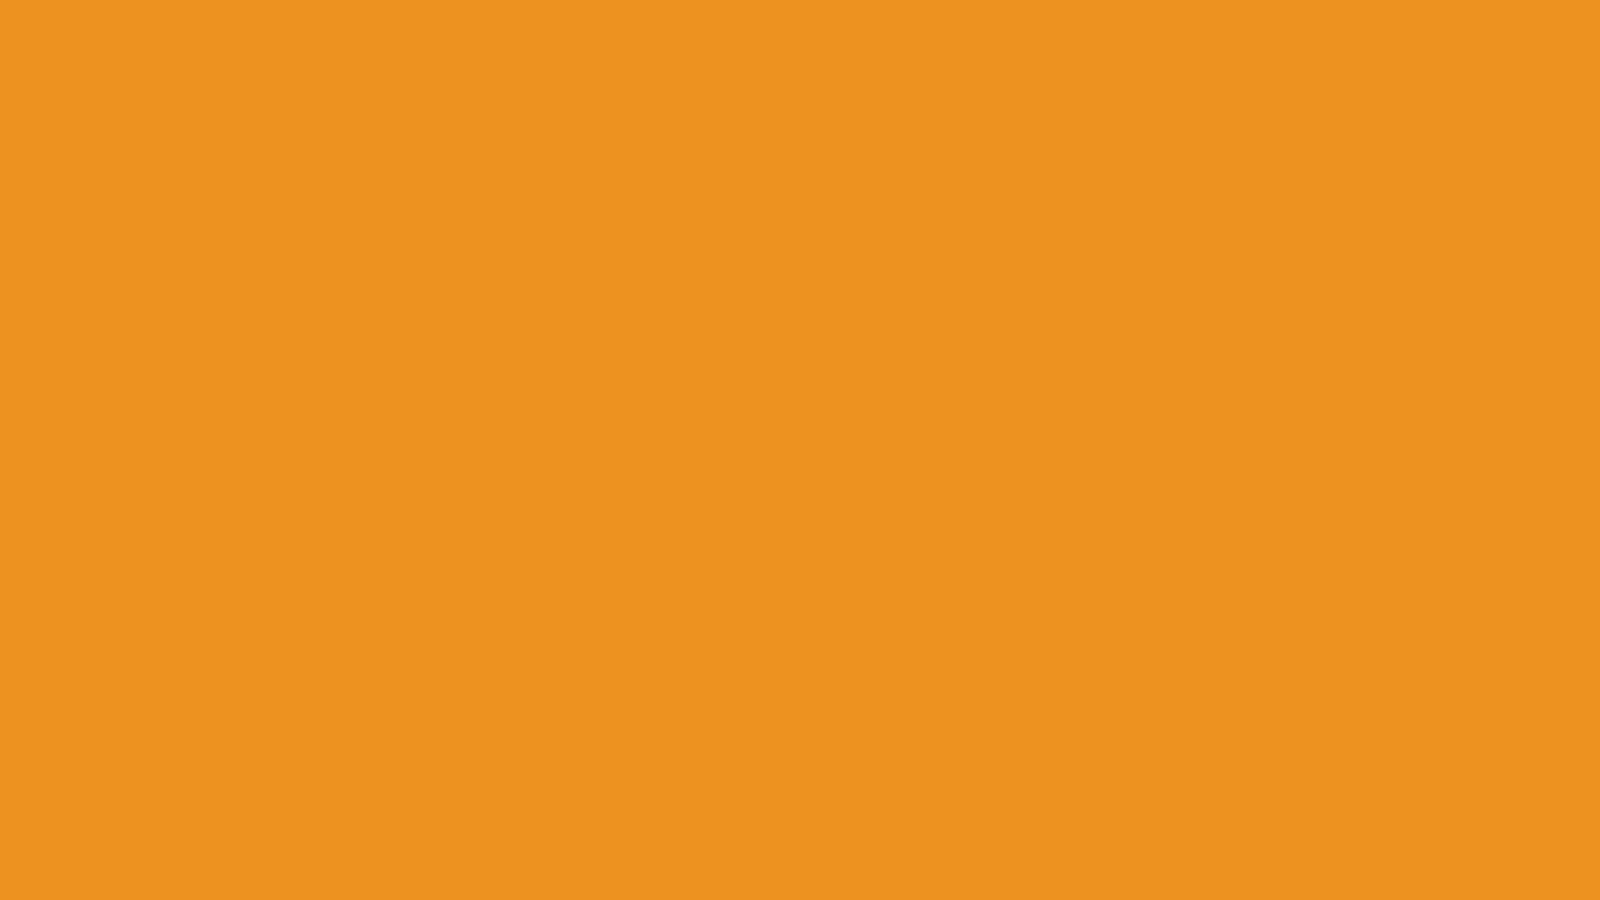 1600x900 Carrot Orange Solid Color Background